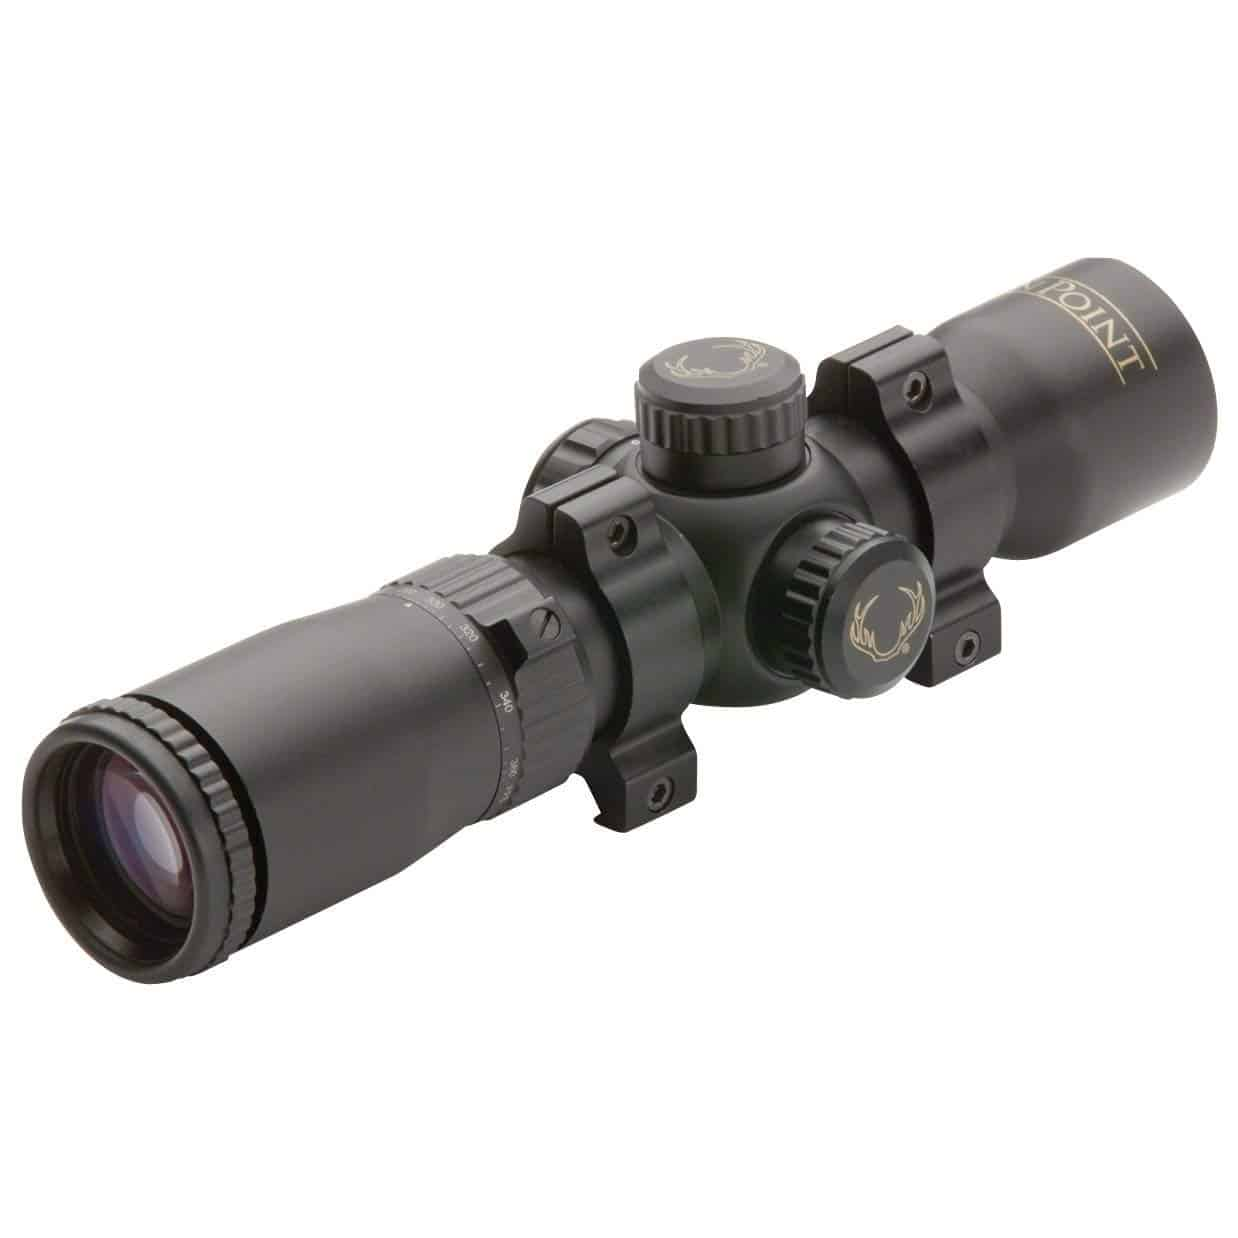 TenPoint Crossbows Illuminating Rangemaster Pro Crossbow Scope (HCA-09811)